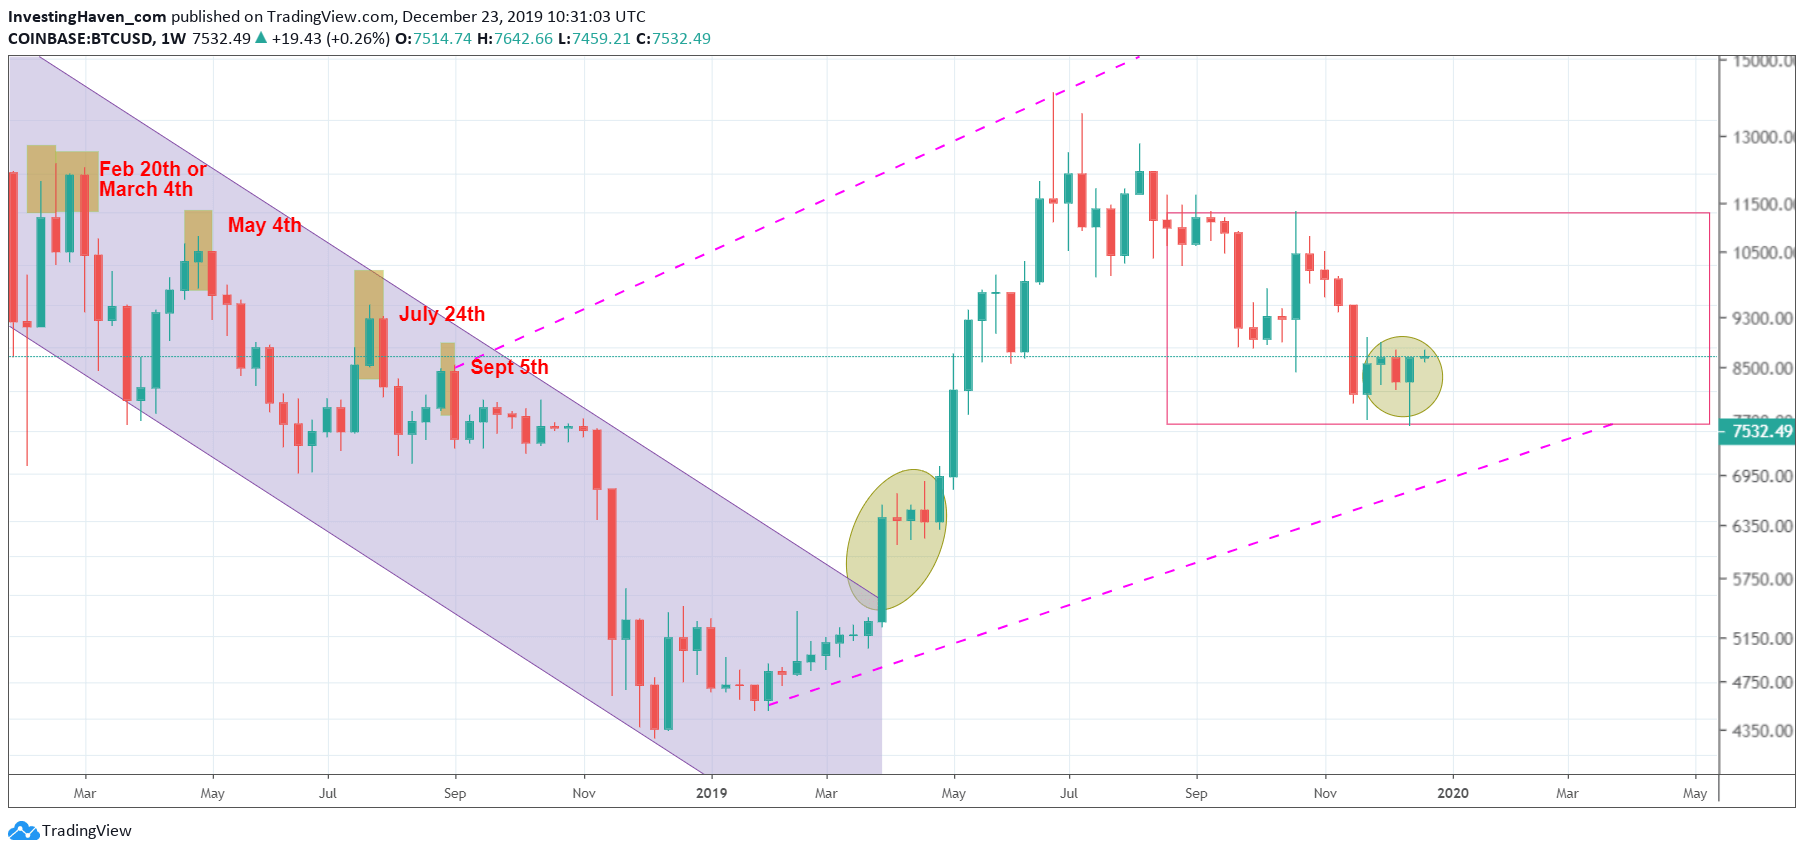 bitcoin price forecast 2020